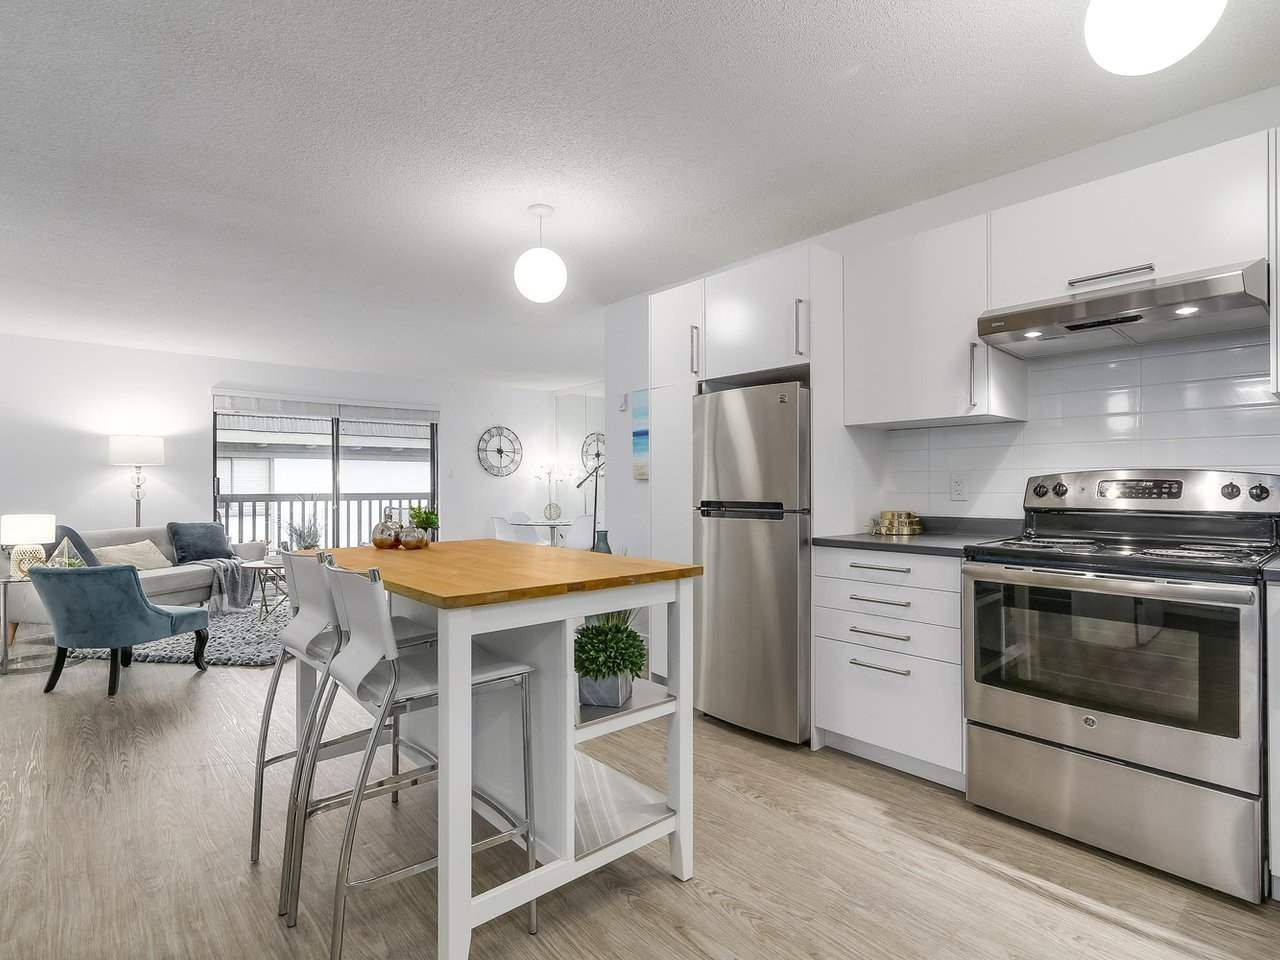 """Main Photo: 304 270 W 3RD Street in North Vancouver: Lower Lonsdale Condo for sale in """"Hampton Court"""" : MLS®# R2220368"""